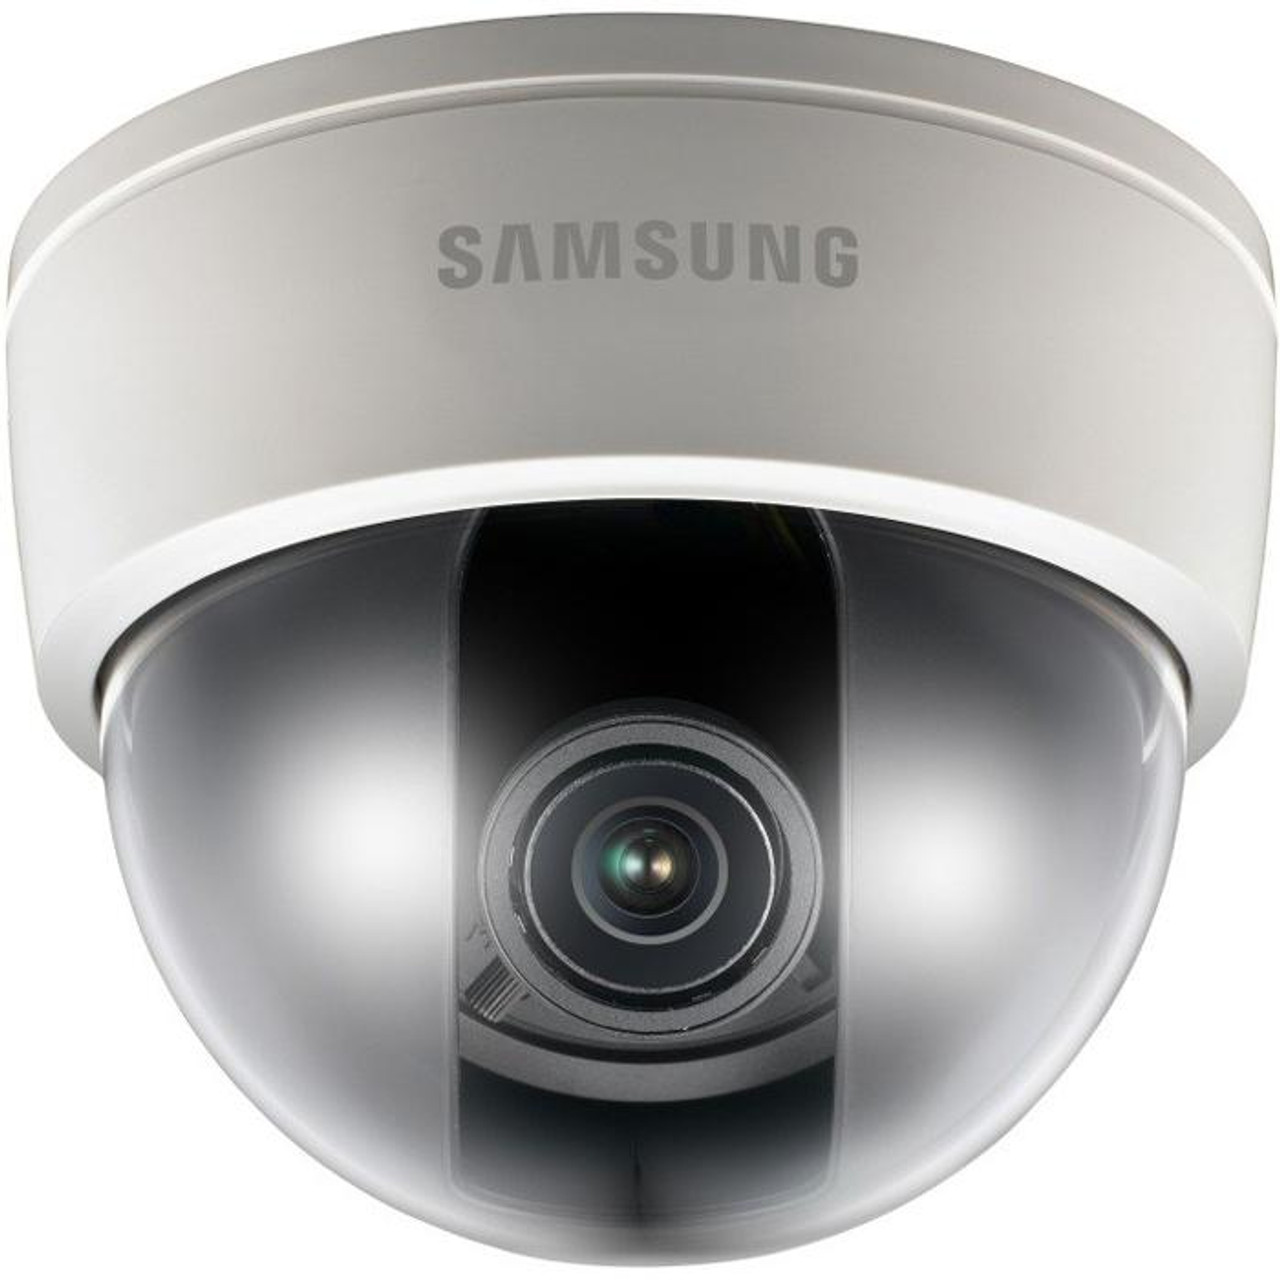 Samsung SNV-1080 Network Camera Drivers for Windows 10